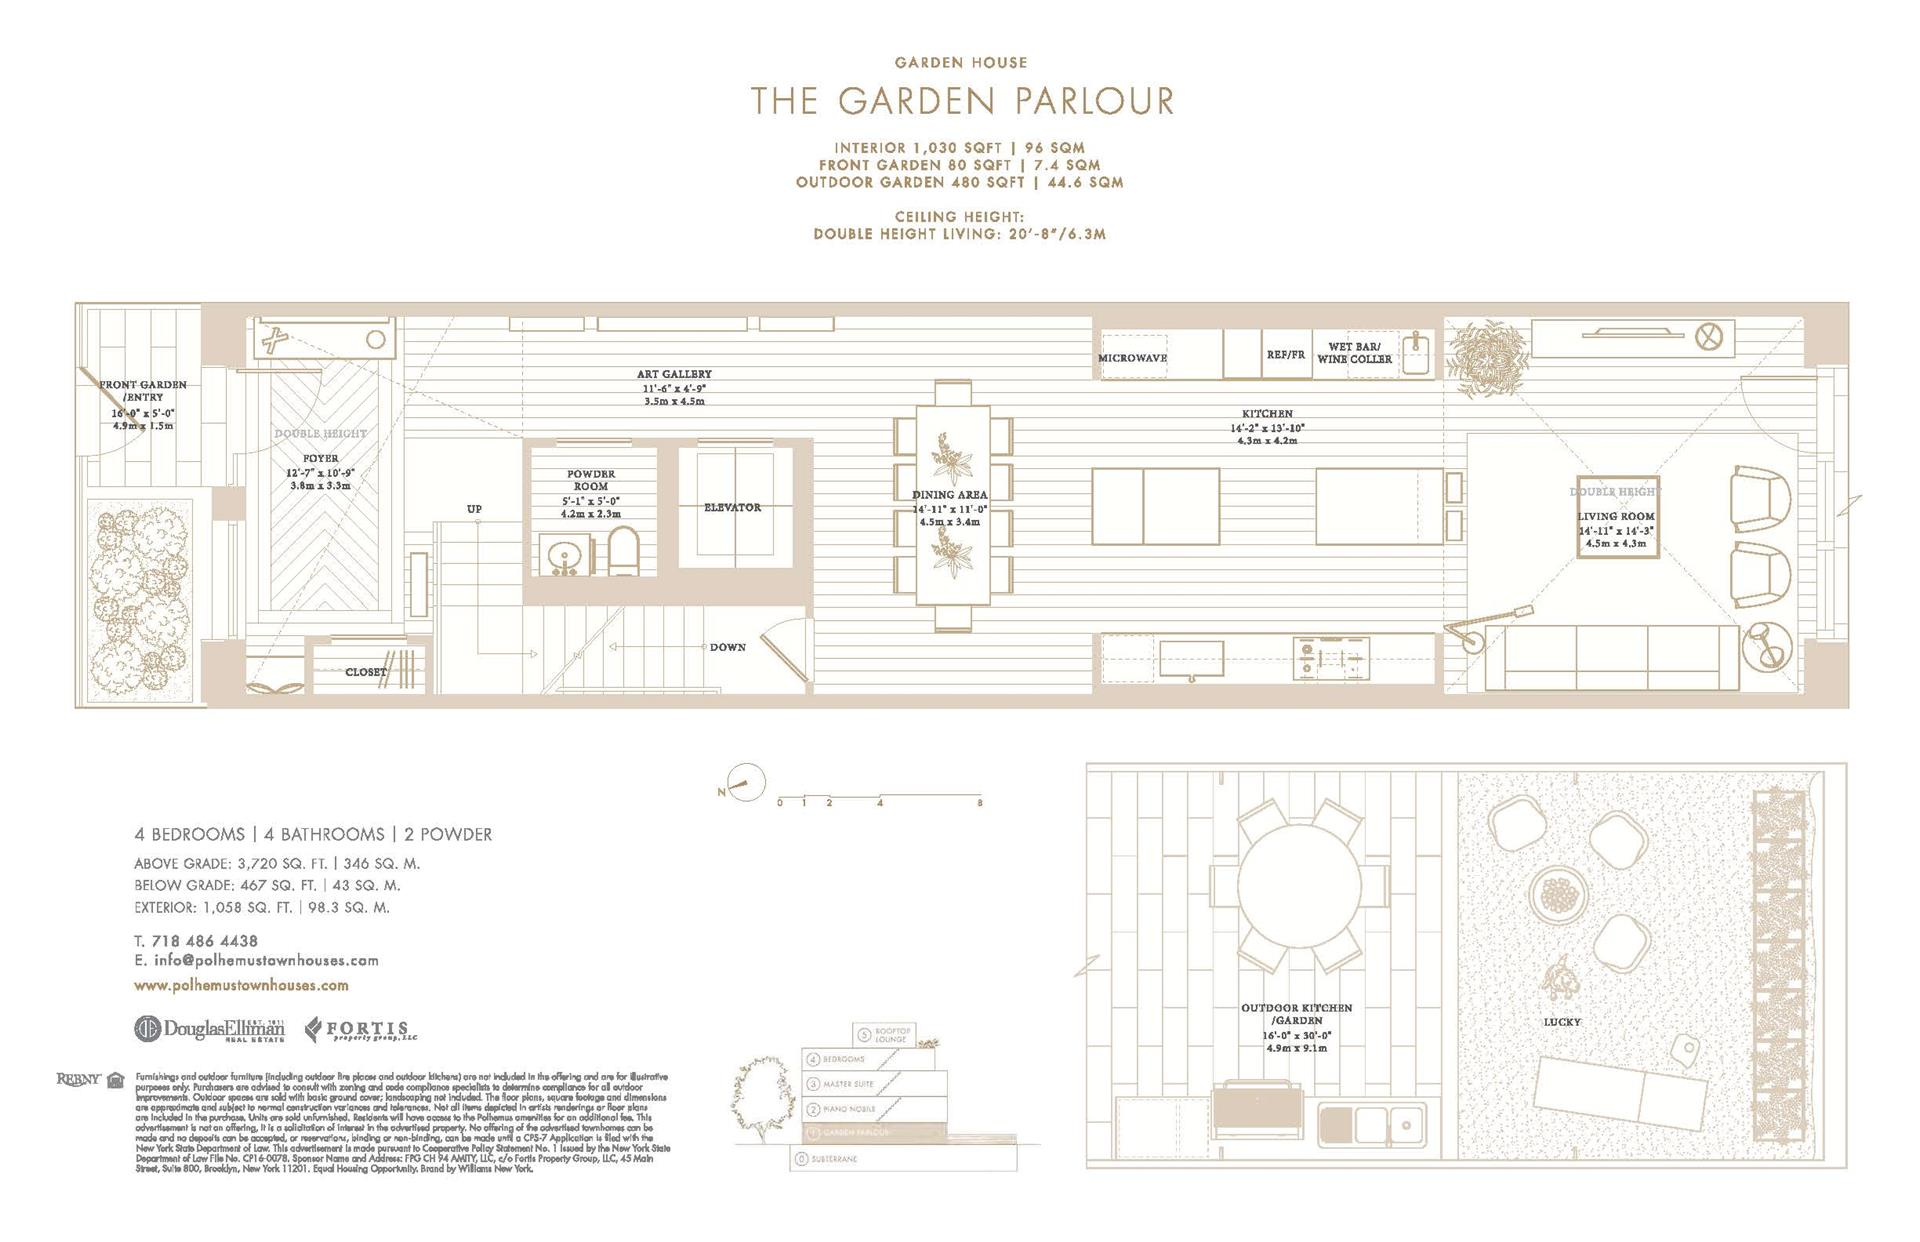 Floor plan of Polhemus, 92 Amity St - Cobble Hill, New York